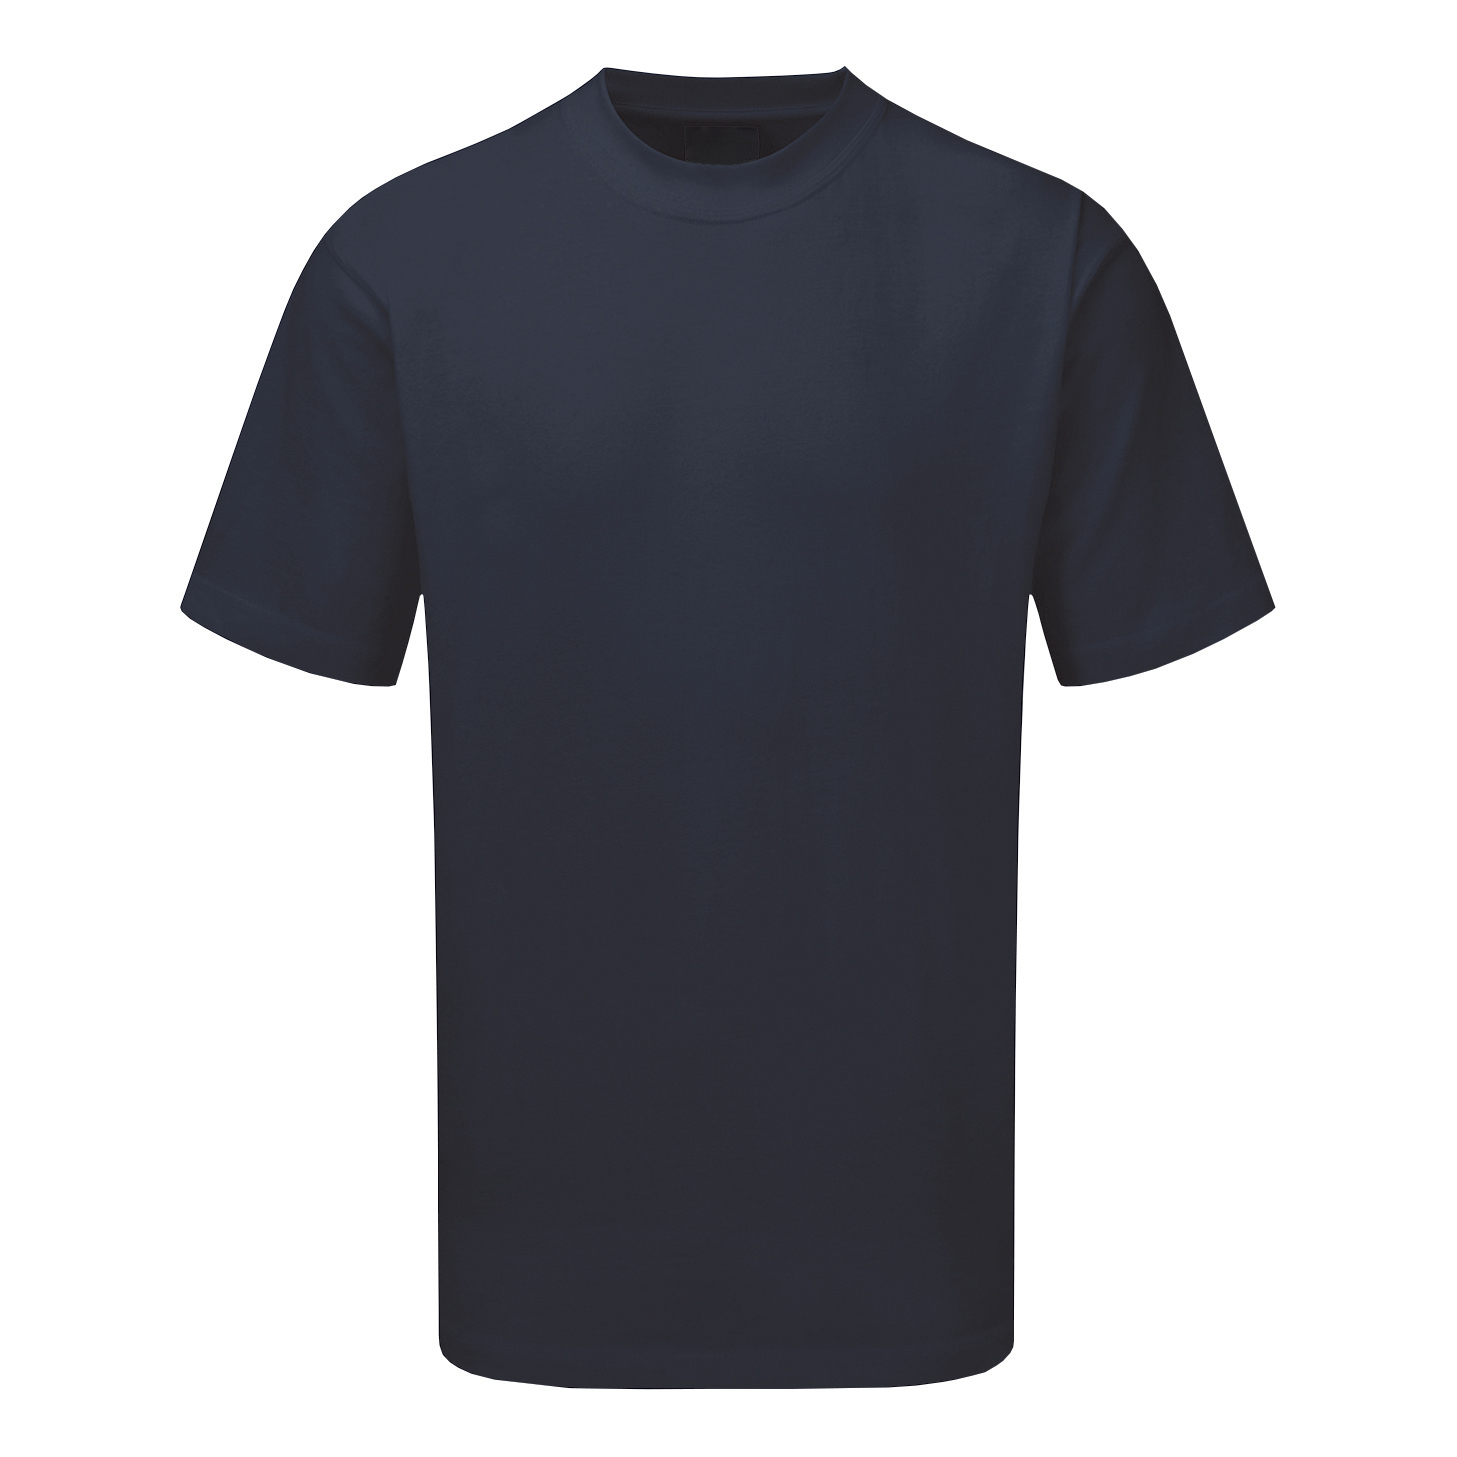 Click Workwear T-Shirt Heavyweight 180gsm XL Navy Blue Ref CLCTSHWNXL *Up to 3 Day Leadtime*